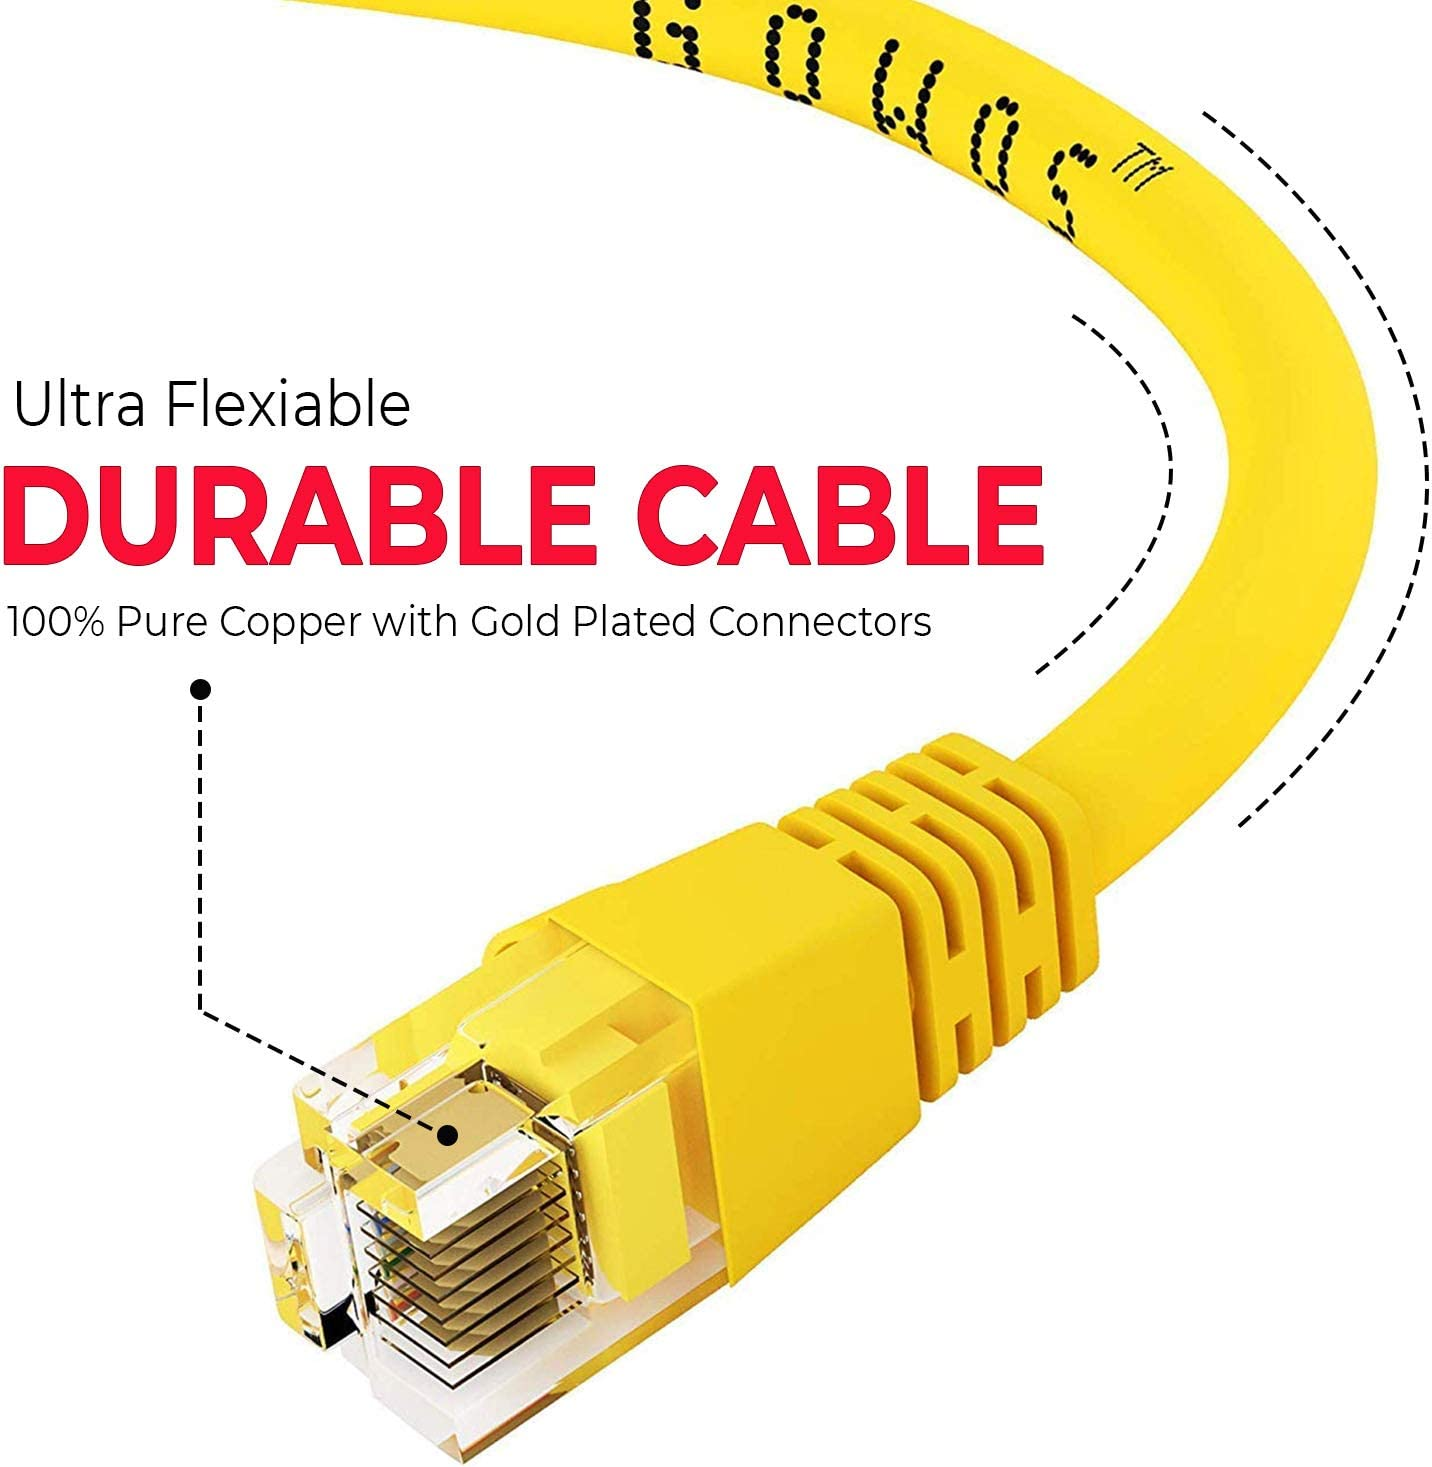 1Gigabit//Sec High Speed LAN Internet//Patch Cable Yellow 350MHz 20-Pack - 2 Feet GOWOS Cat5e Ethernet Cable 24AWG Network Cable with Gold Plated RJ45 Snagless//Molded//Booted Connector